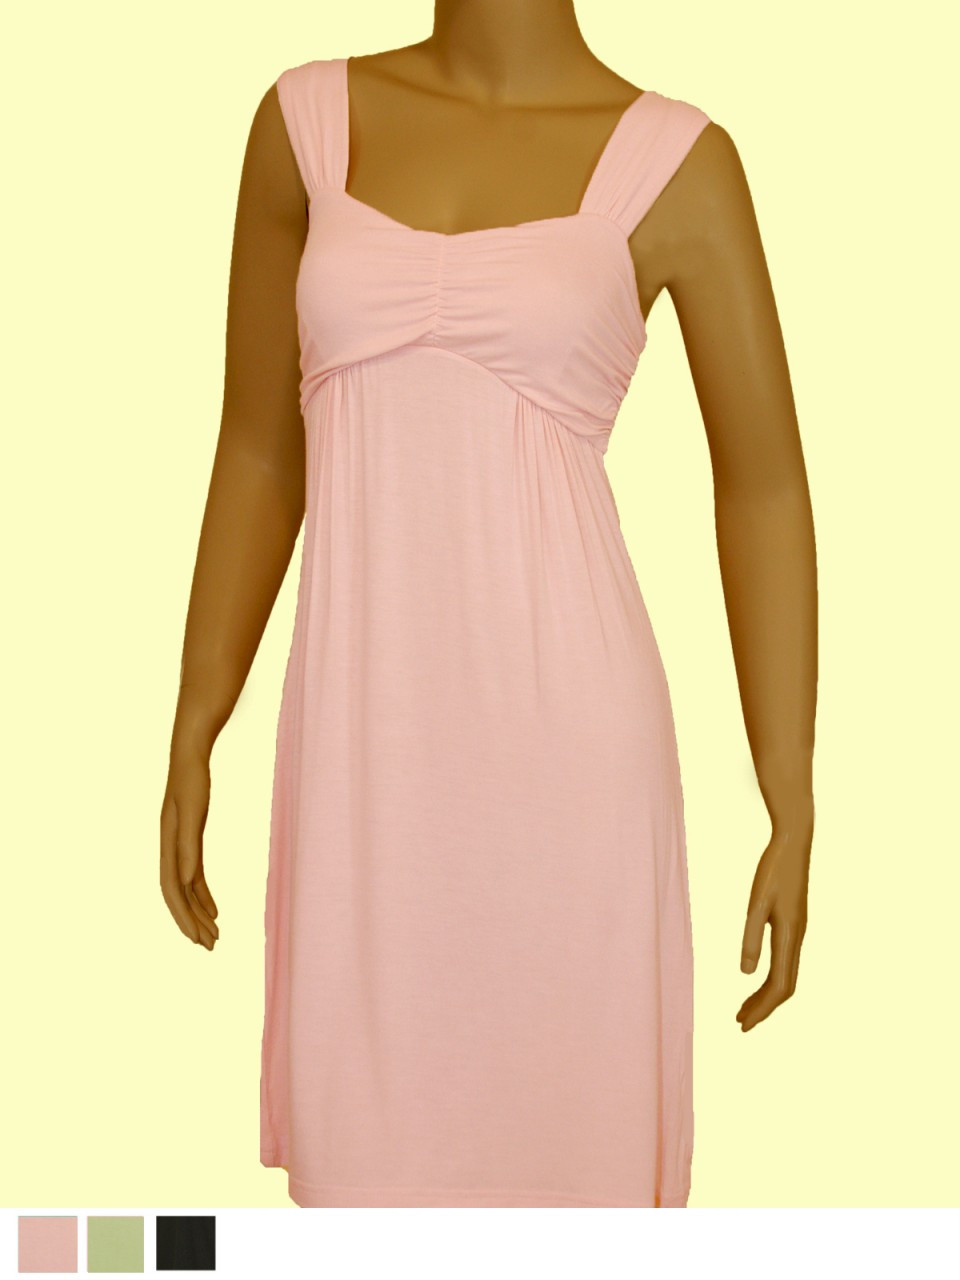 f703e2d97c41 Cleo Gown - Bamboo Viscose - Solne Eco Department Store